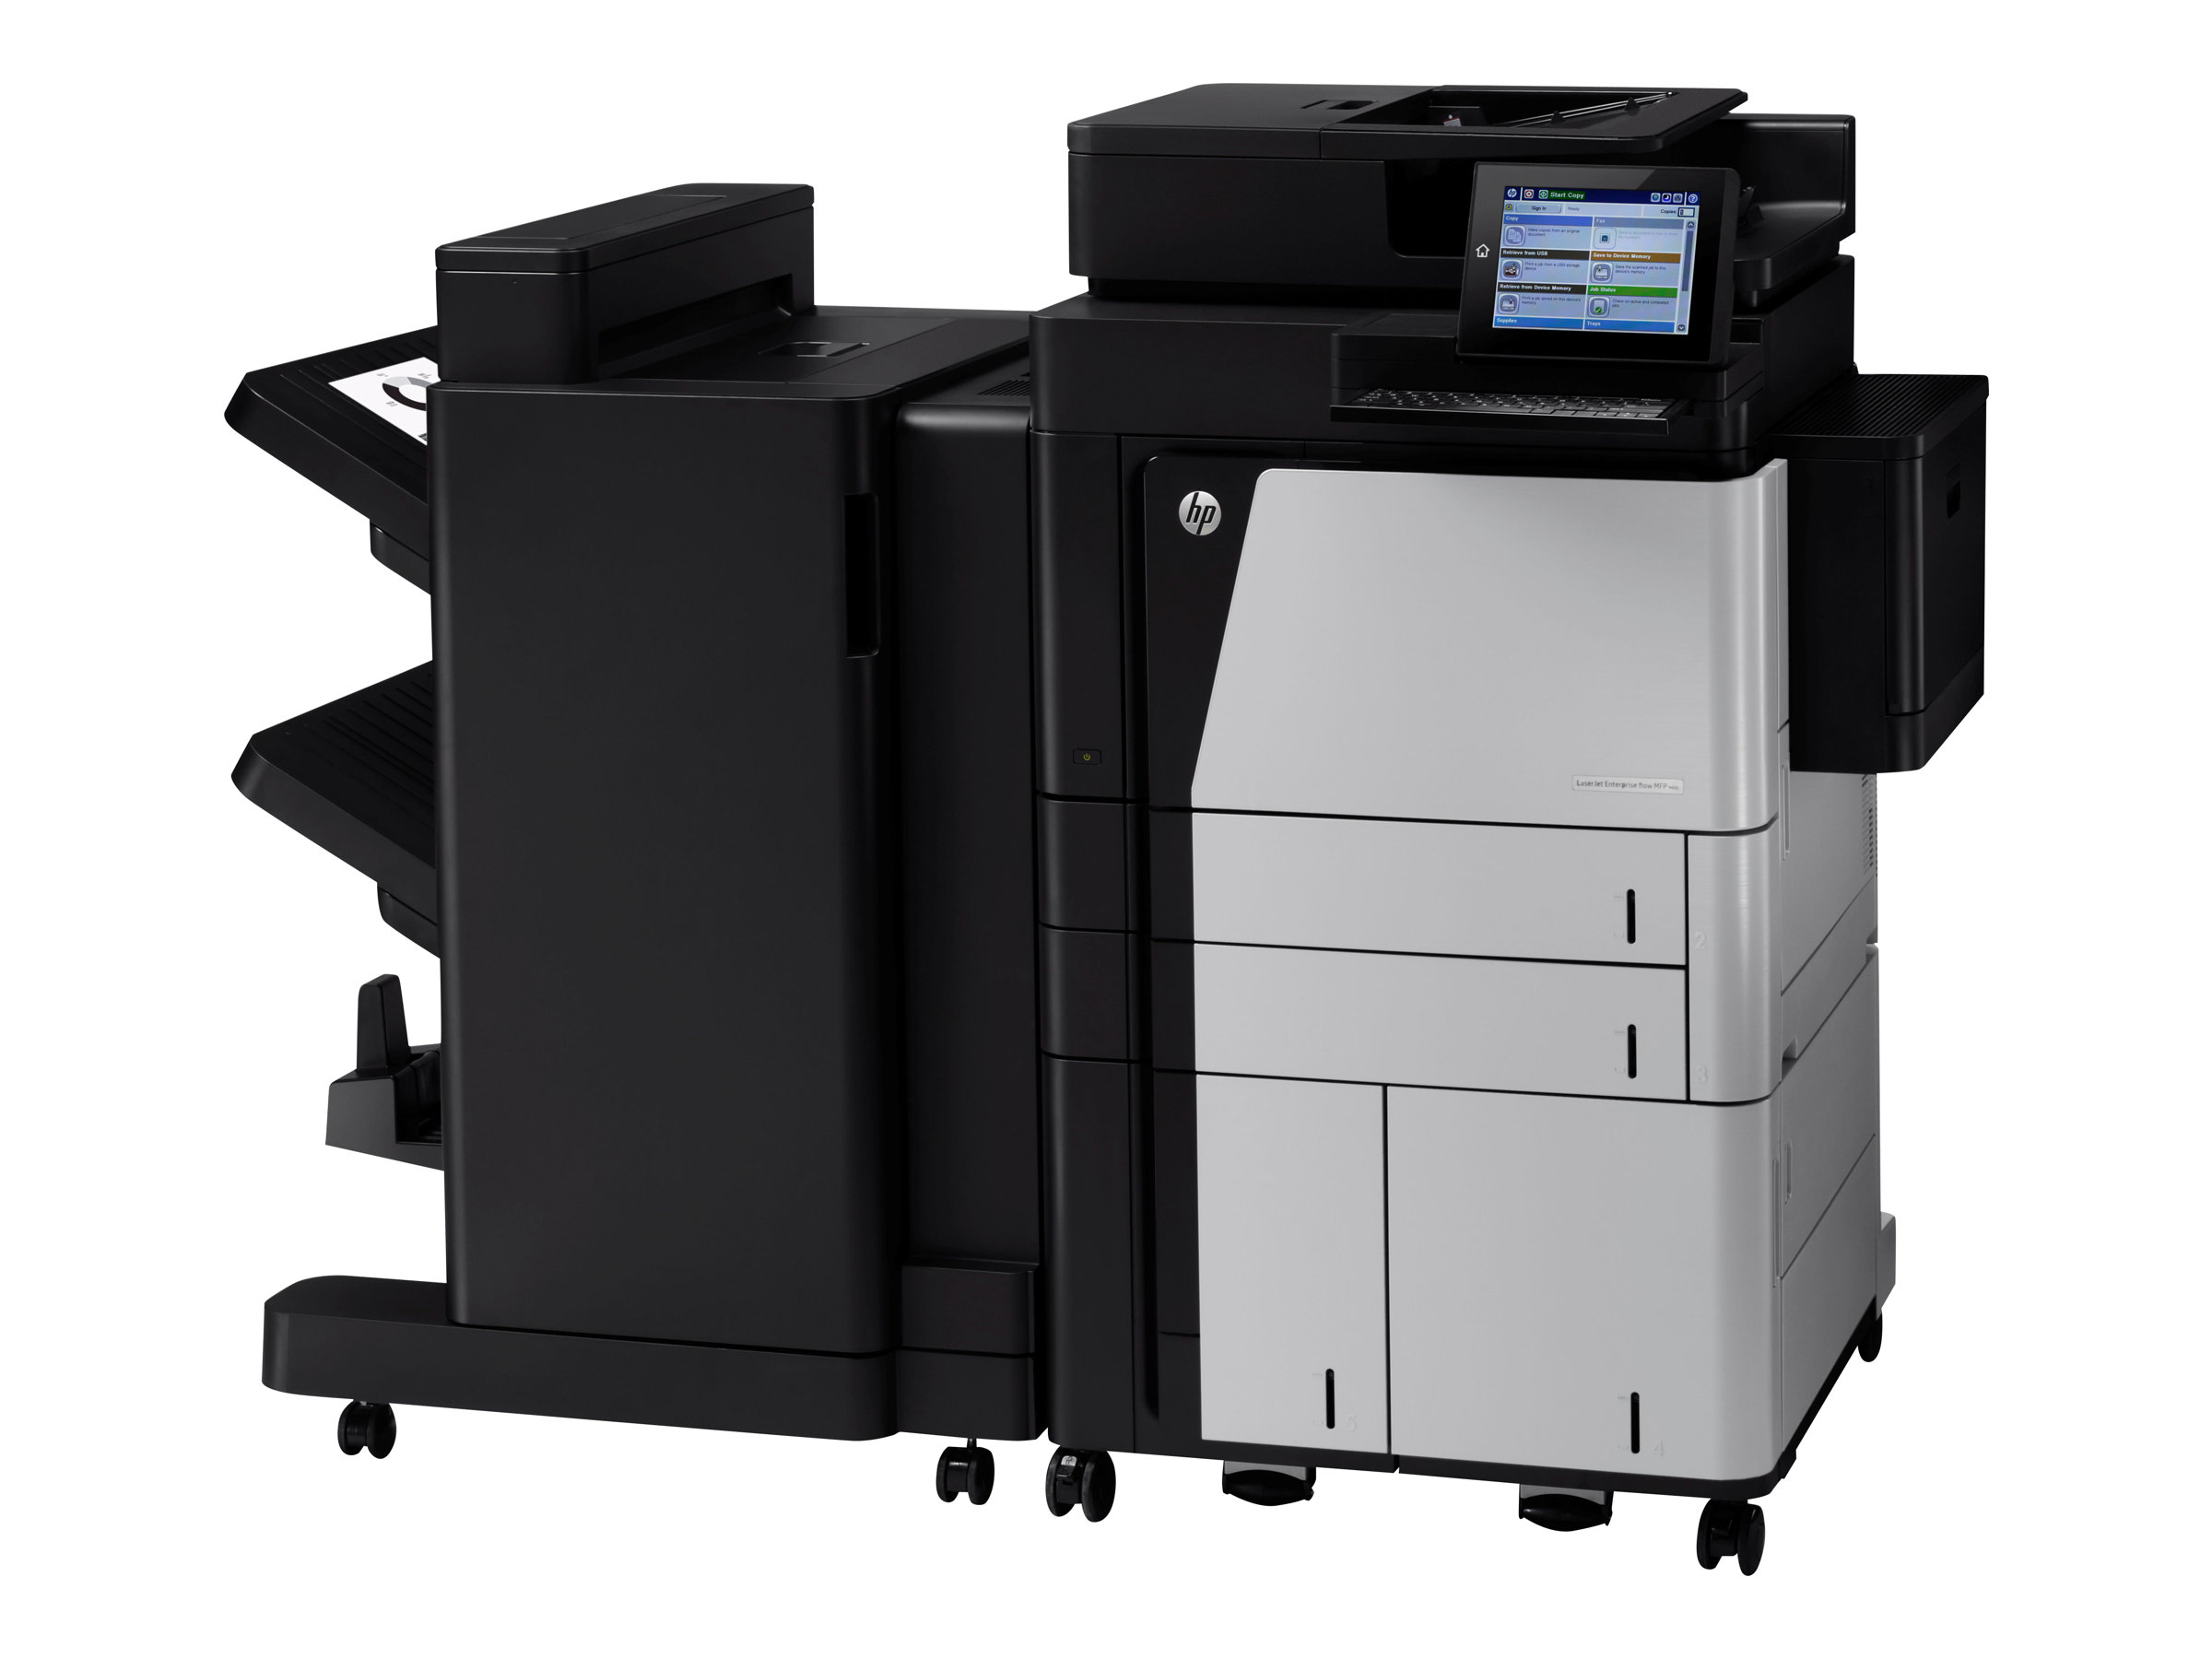 HP LaserJet Enterprise Flow MFP M830z NFC/Wireless direct - Multifunktionsdrucker - s/w - Laser - A3/Ledger (297 x 432 mm) (Original) - A3/Ledger (Medien)